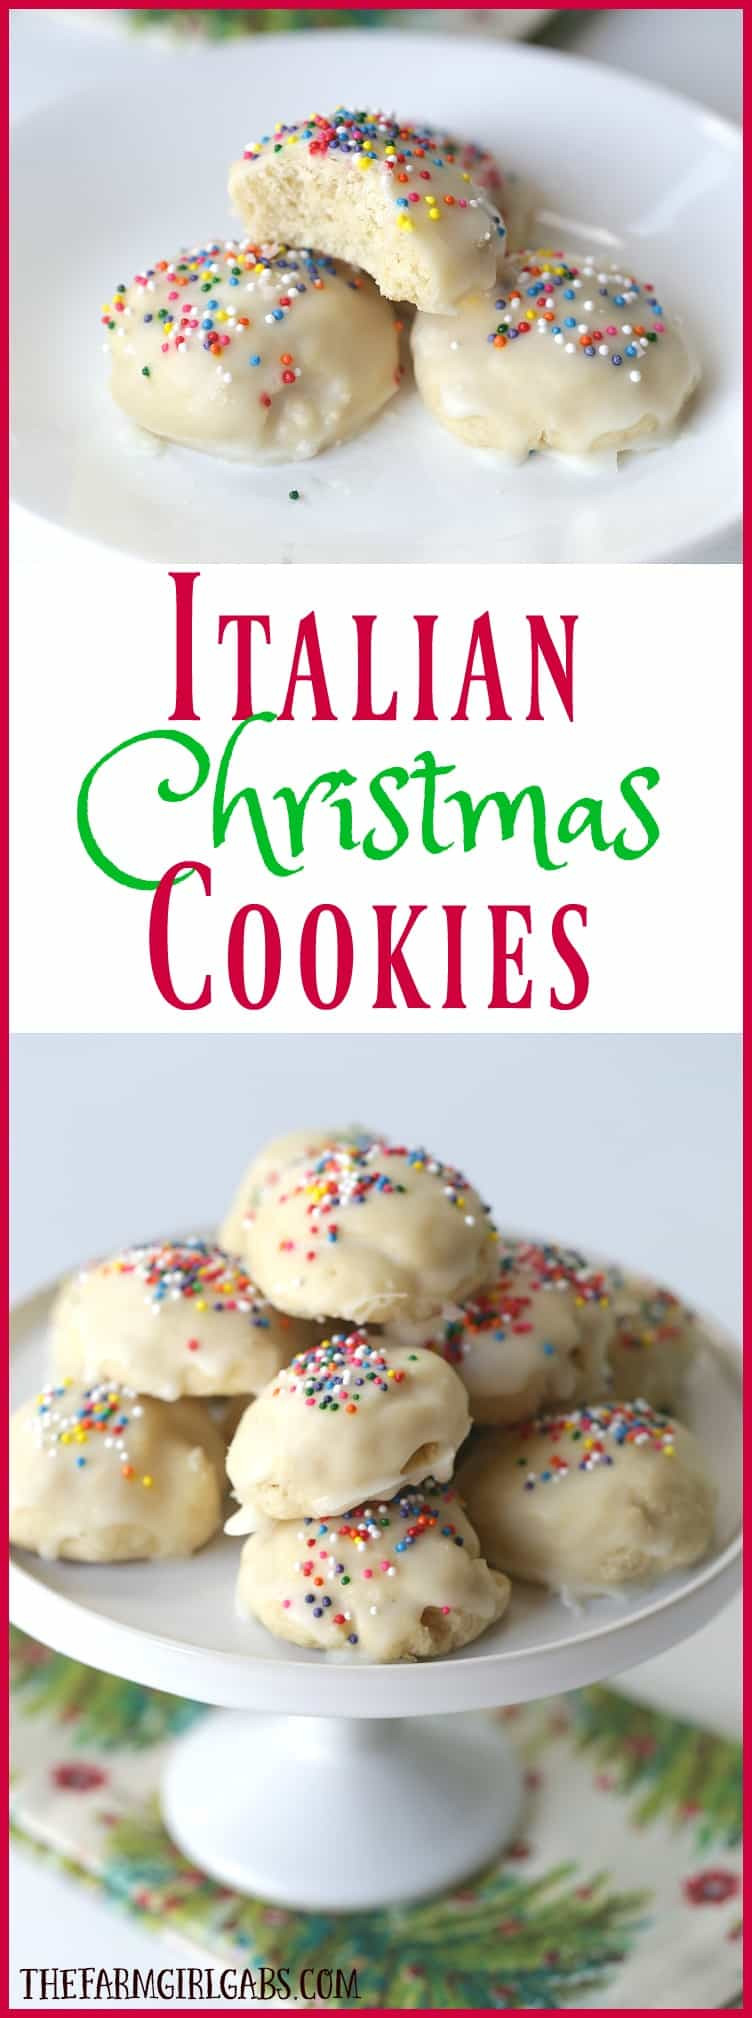 Italian Christmas Cookie Recipes  Italian Christmas Cookies The Farm Girl Gabs